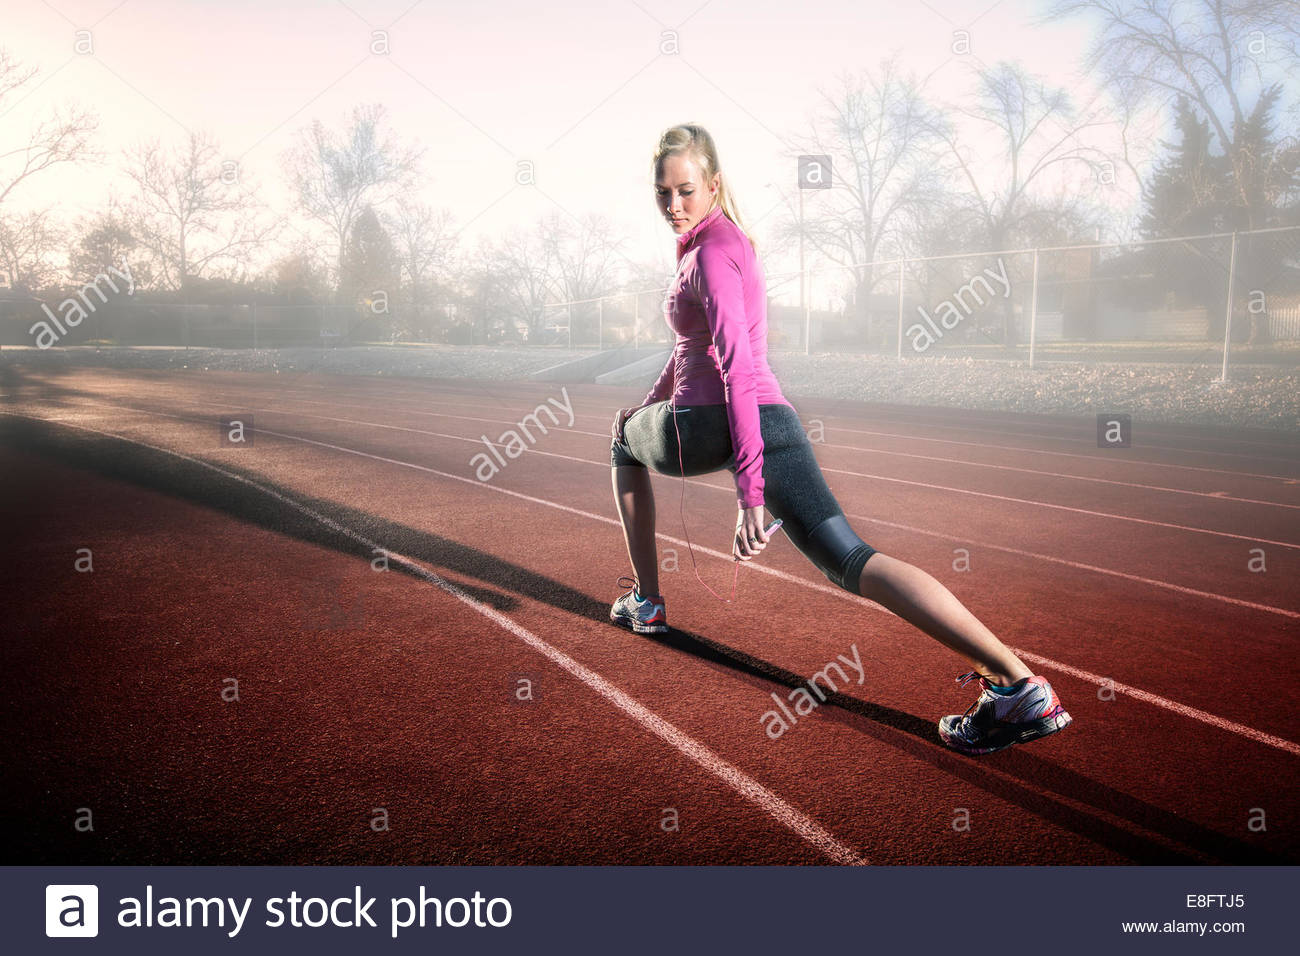 Woman stretching on running track and listening to music, Colorado, America, USA - Stock Image